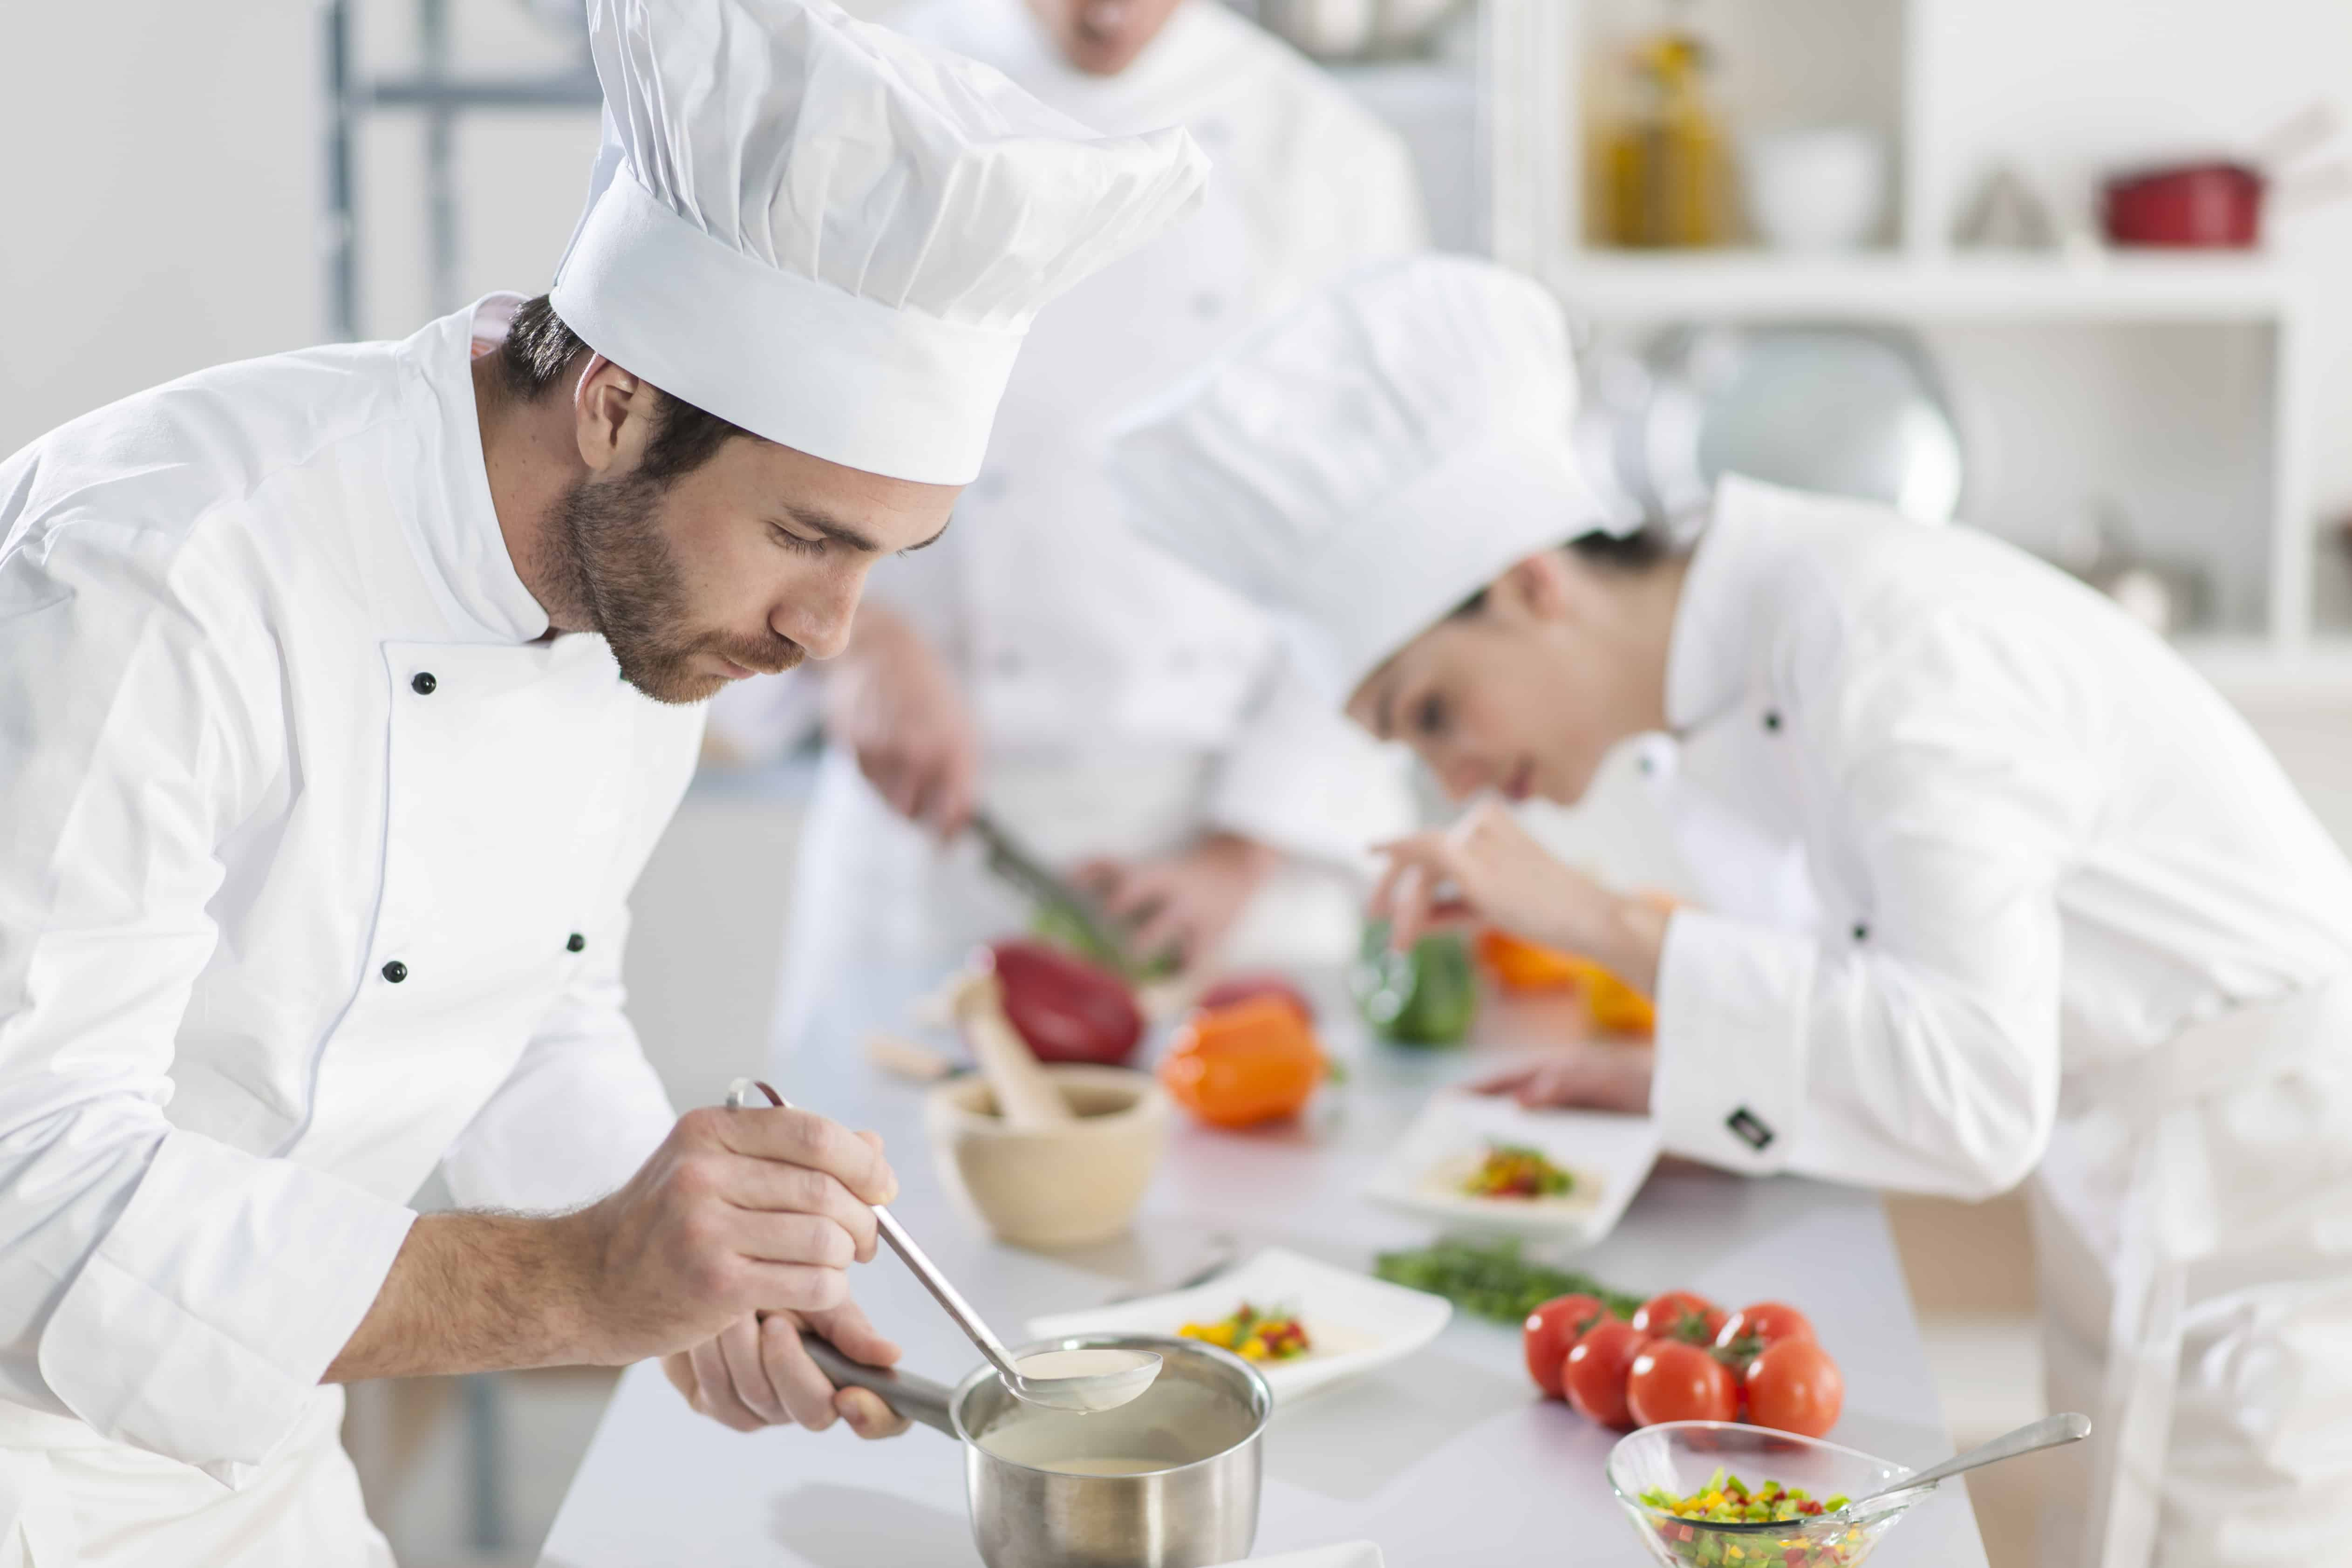 Level 3 Supervising Food Safety for Catering